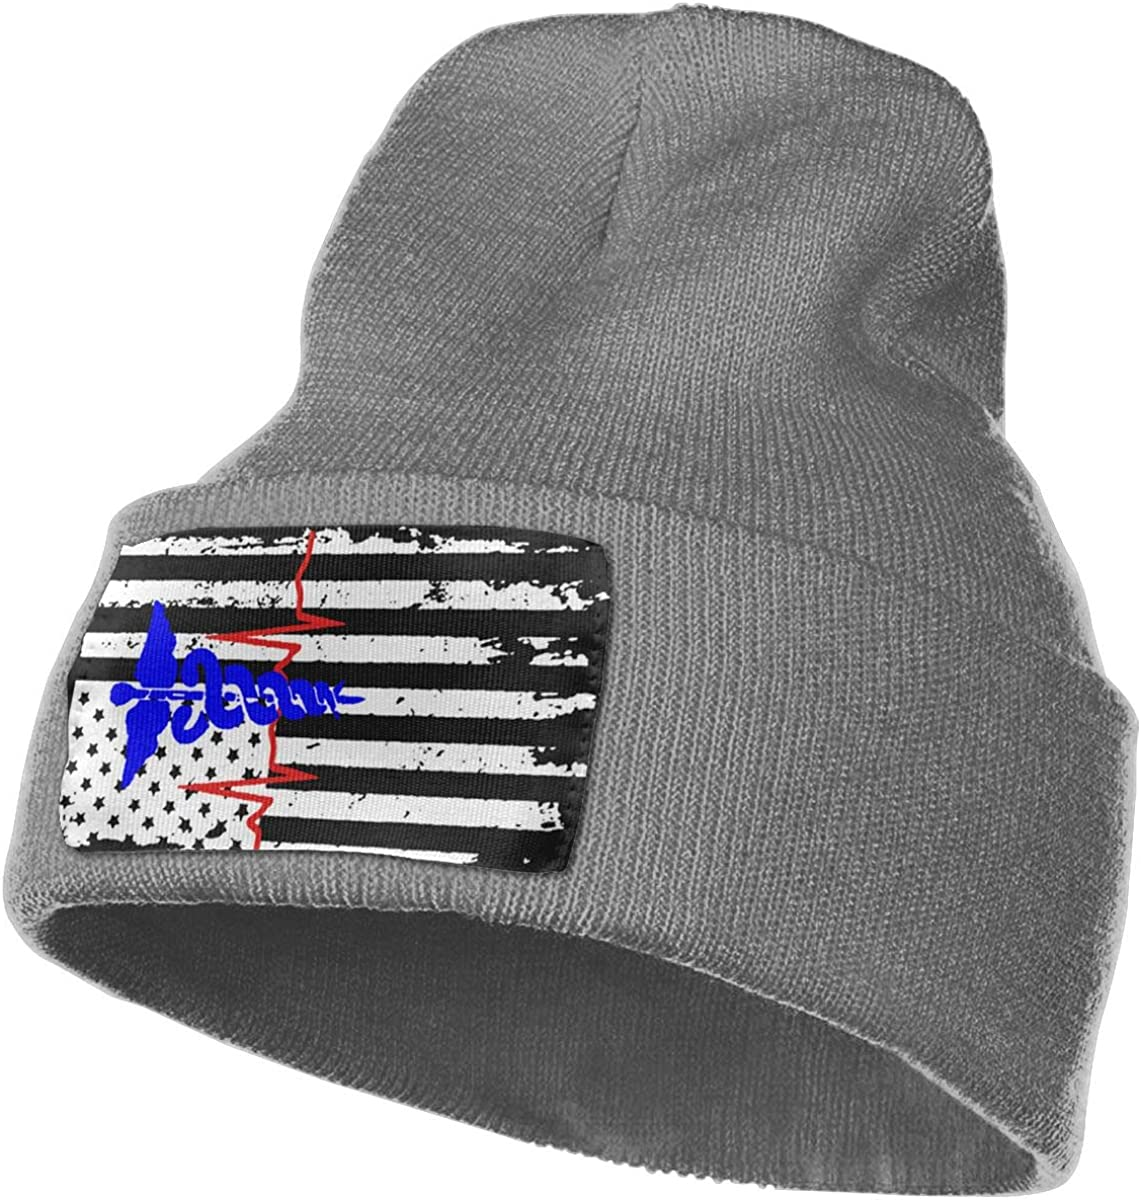 Z-YY Nurse American Flag Unisex Winter Knitting Woolen Hat Warm Cap